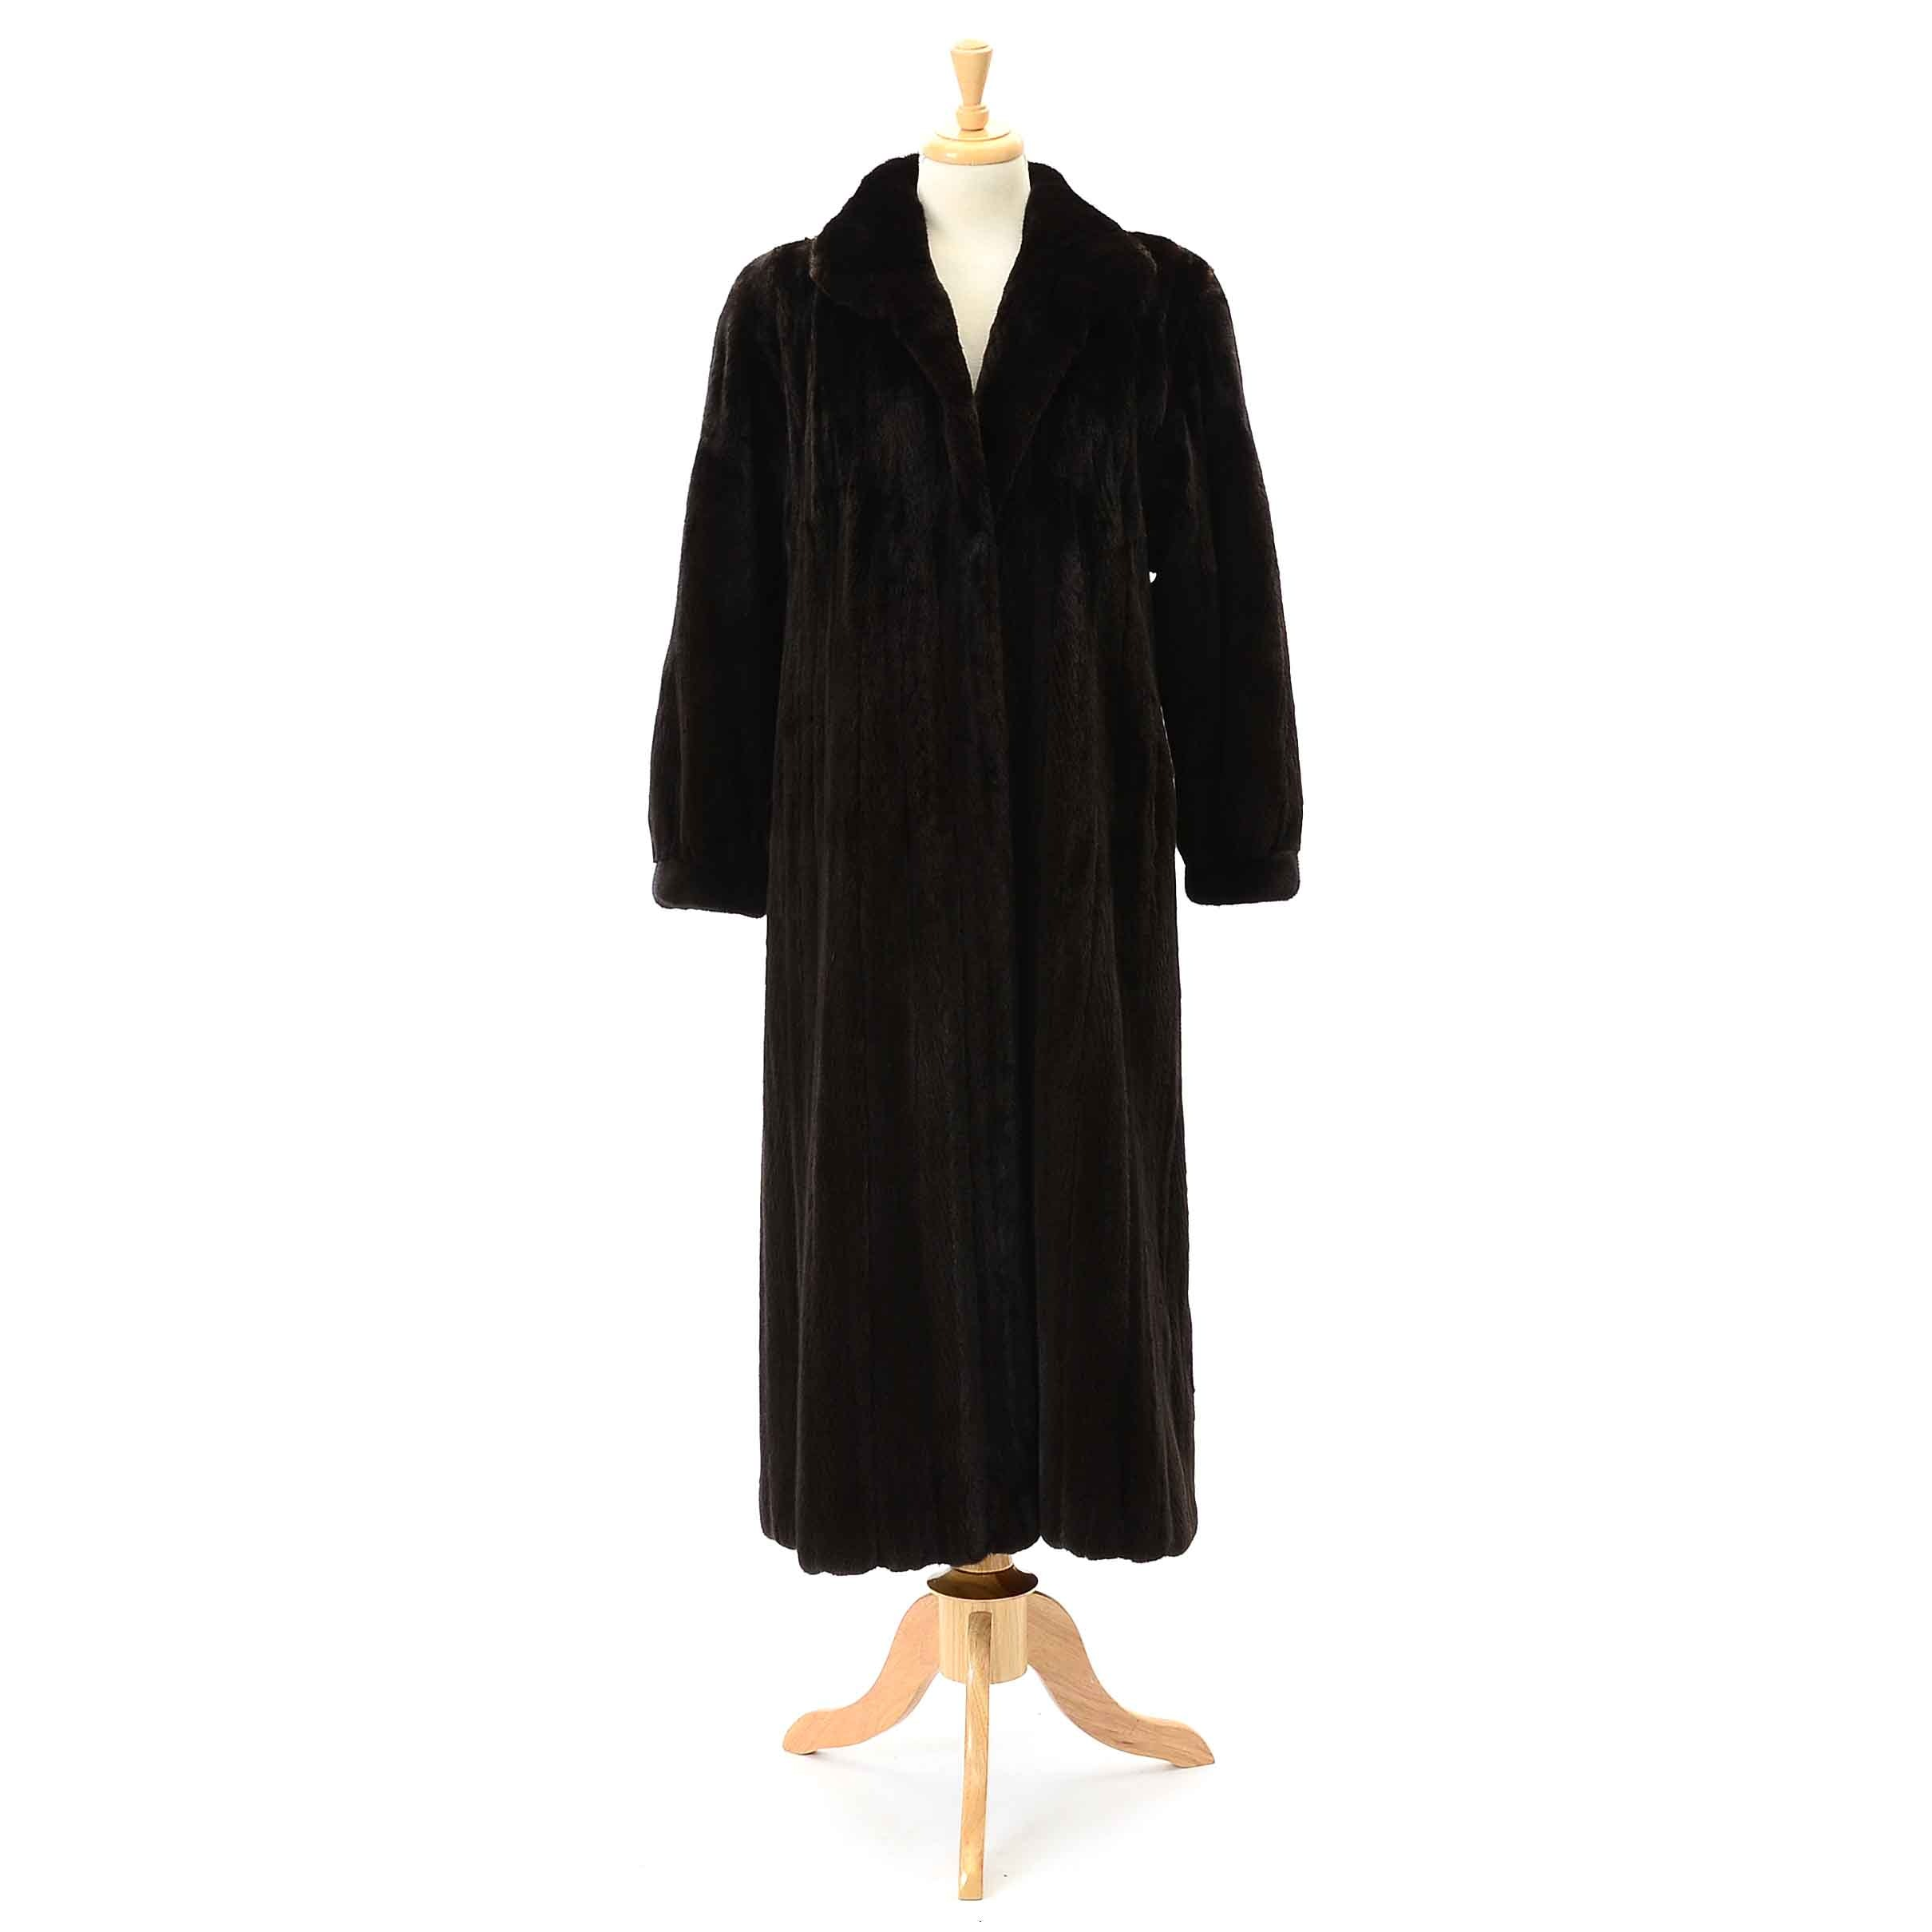 Women's Vintage Sheared Mink Fur Coat